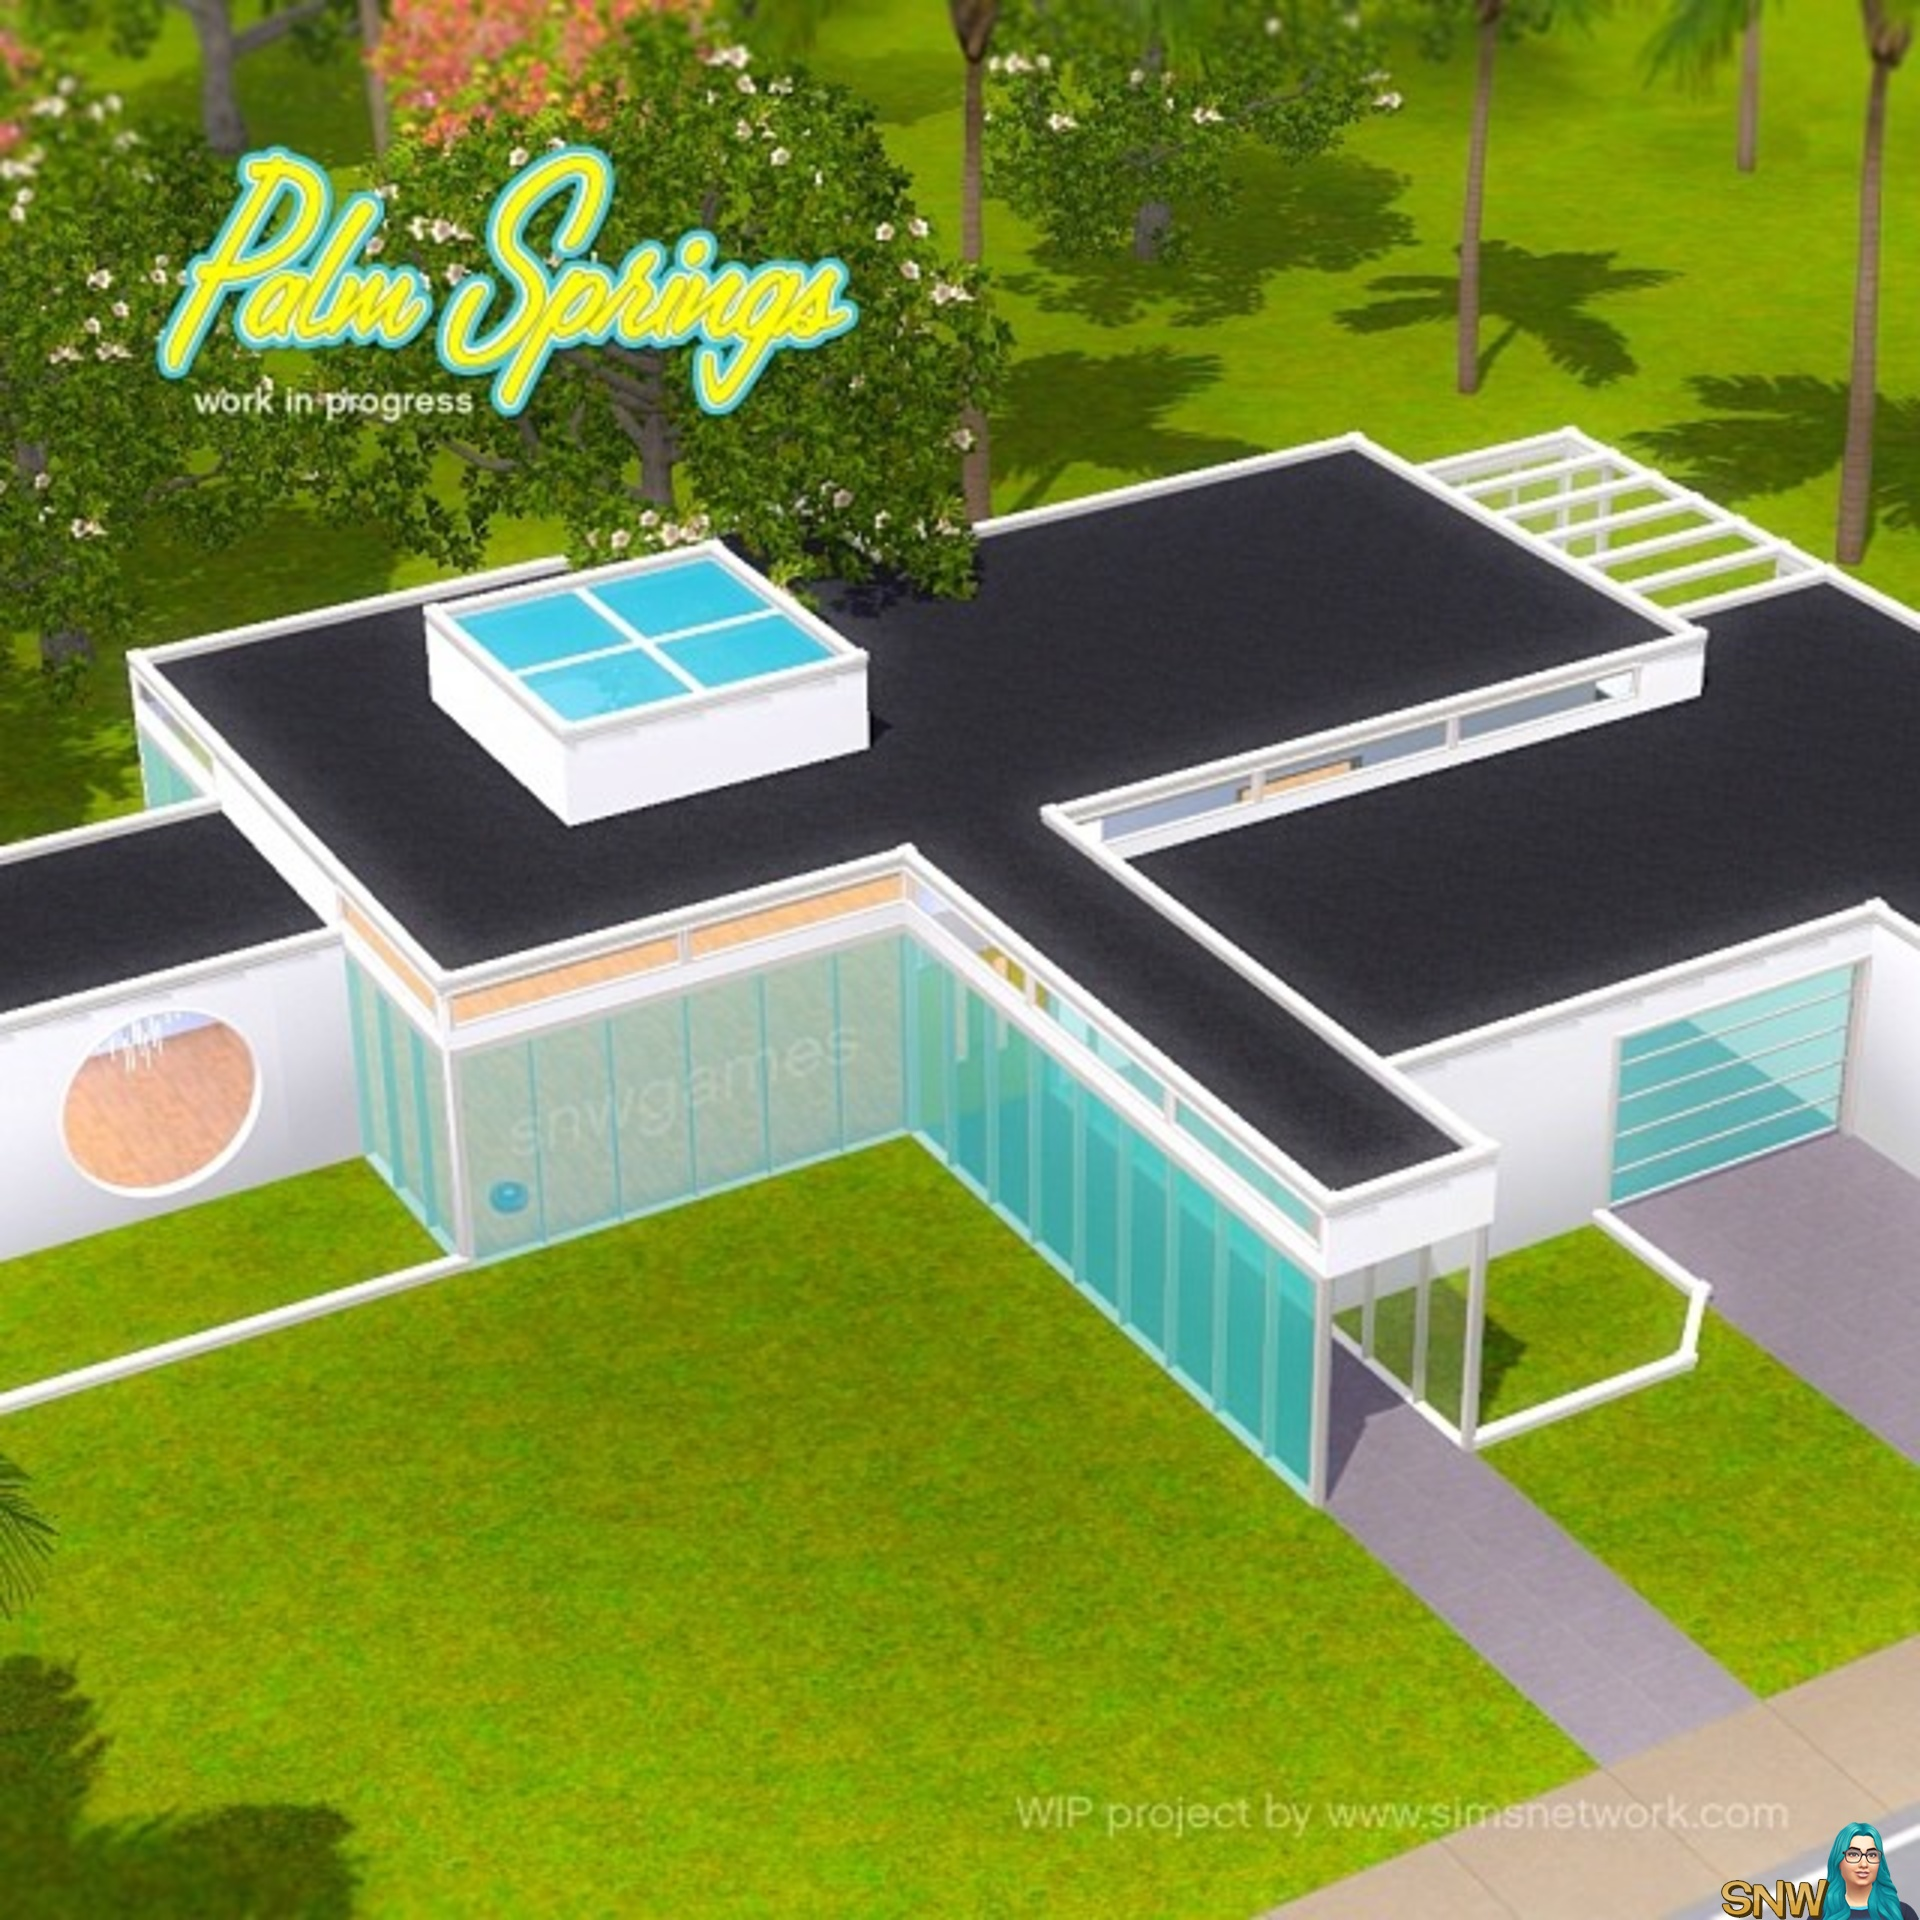 Mid-Century Modern House In The Sims 4